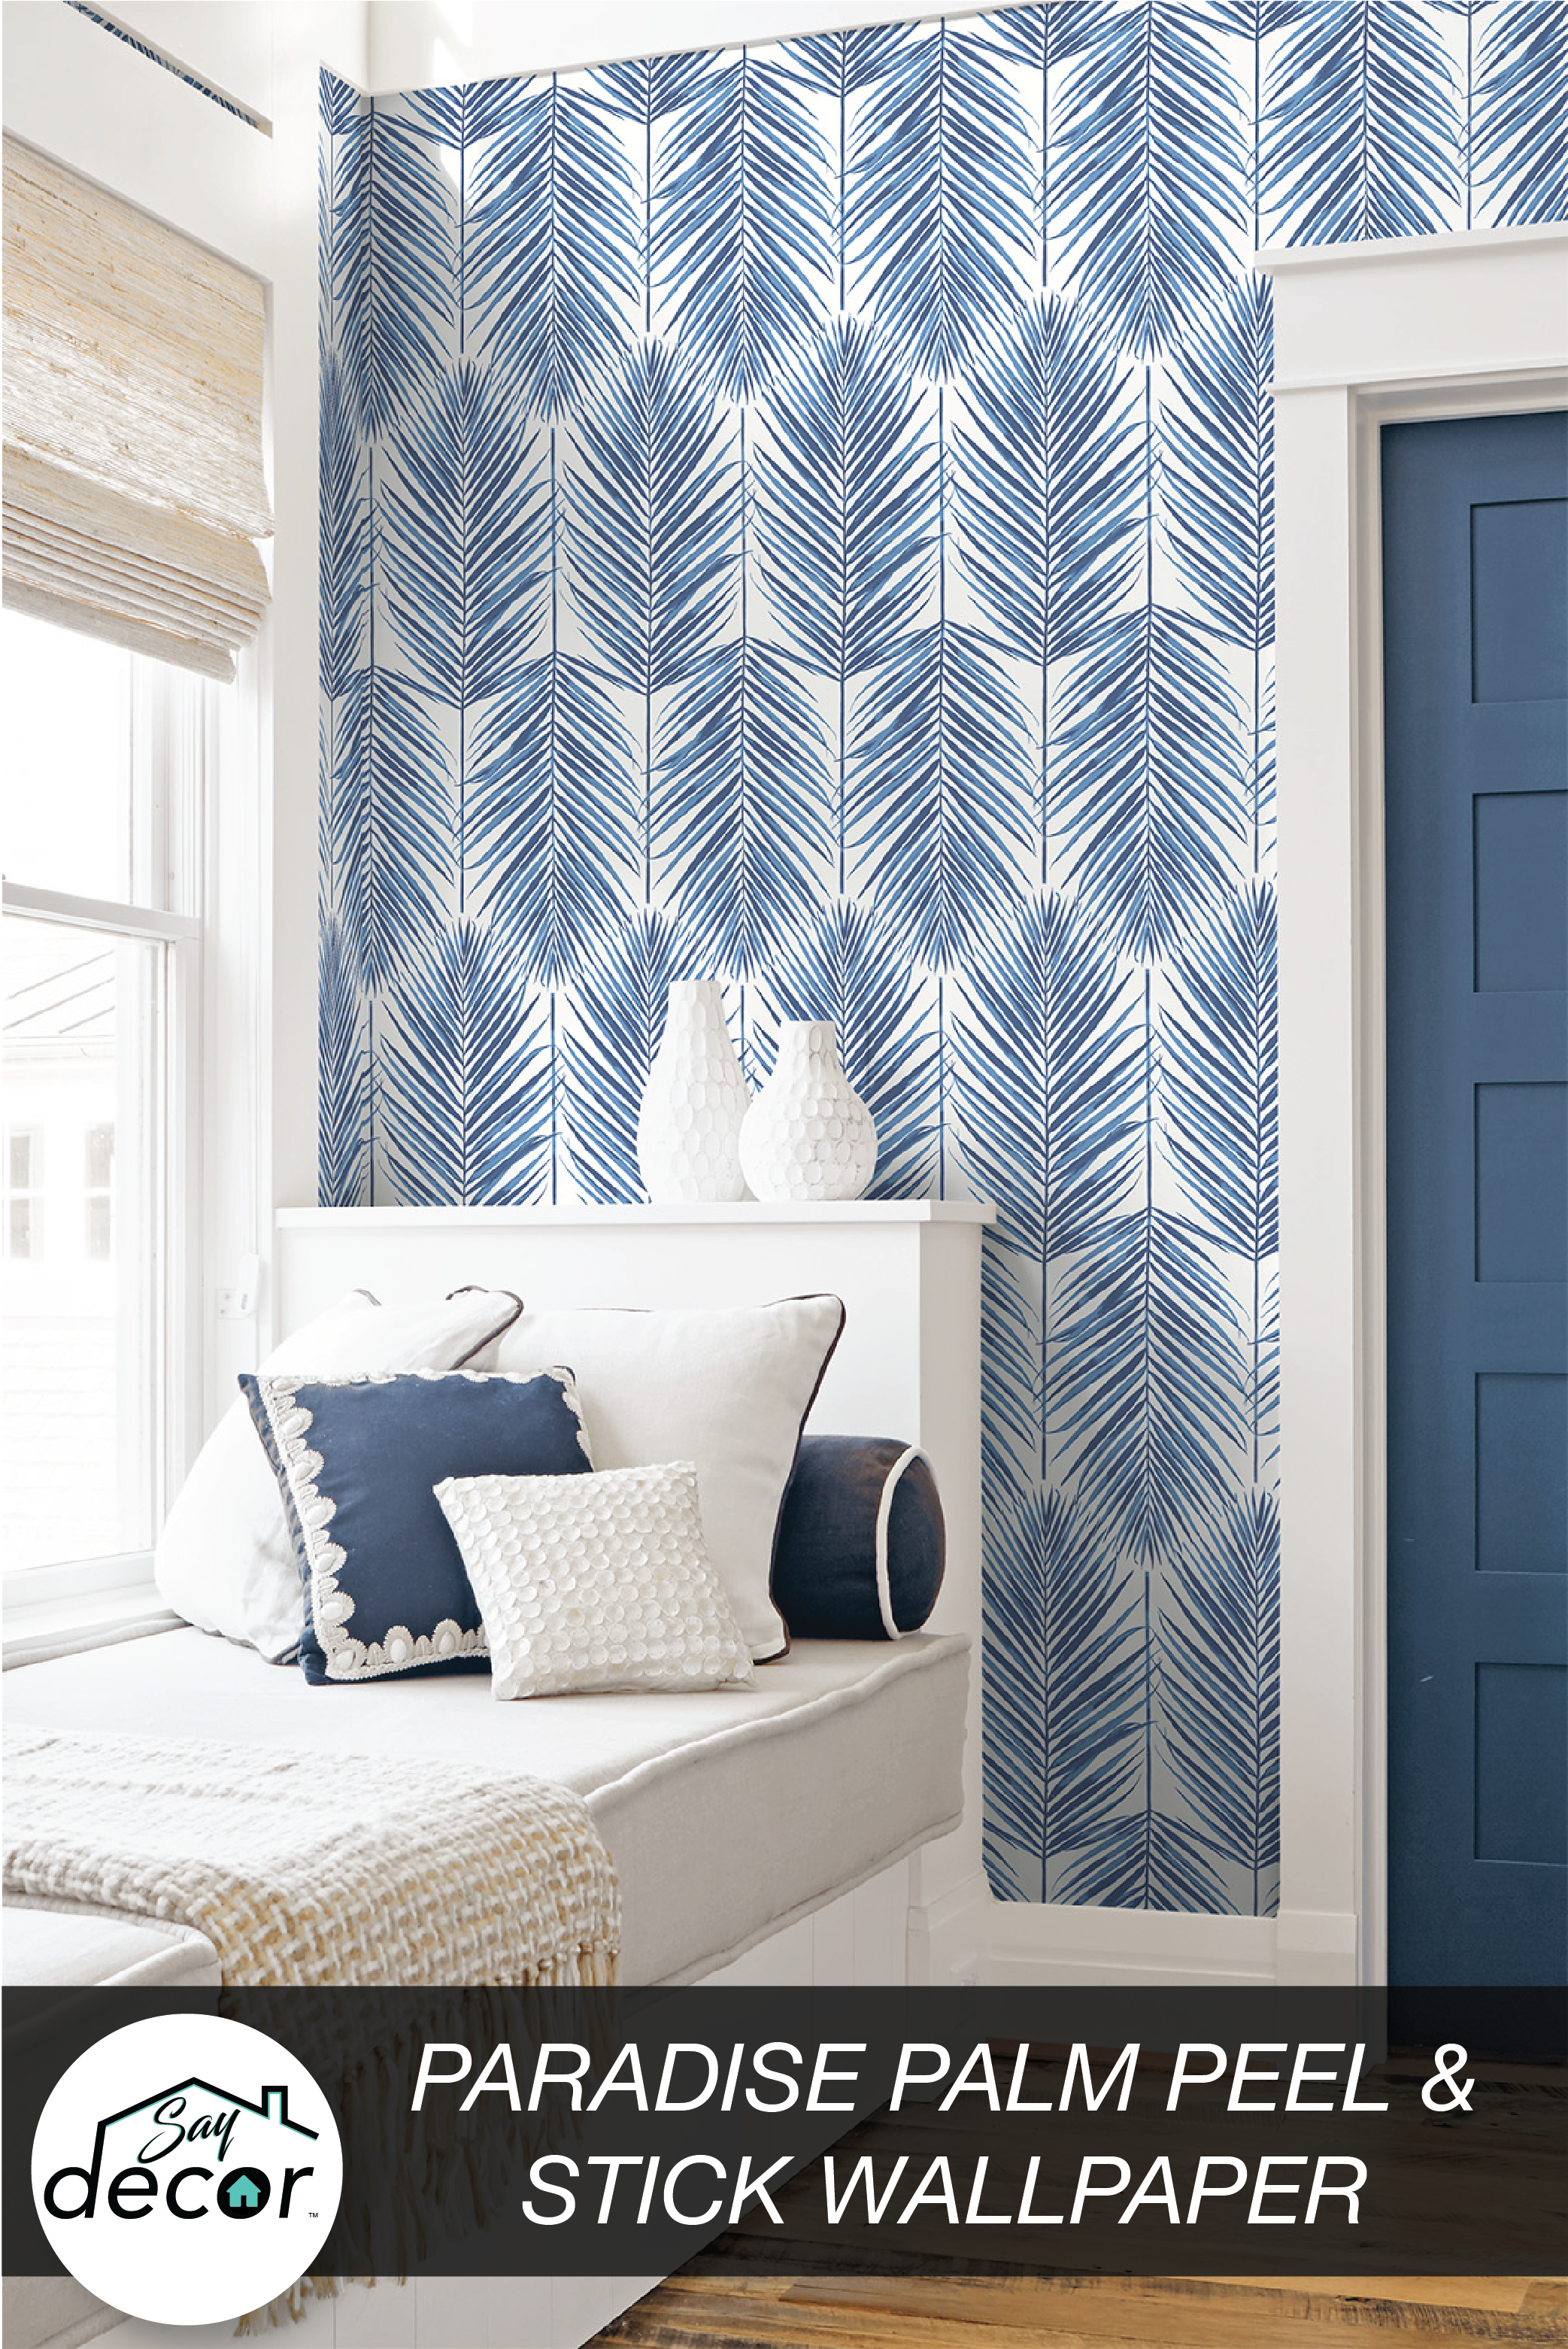 Pin On Peel And Stick Removable Wallpaper Say Decor